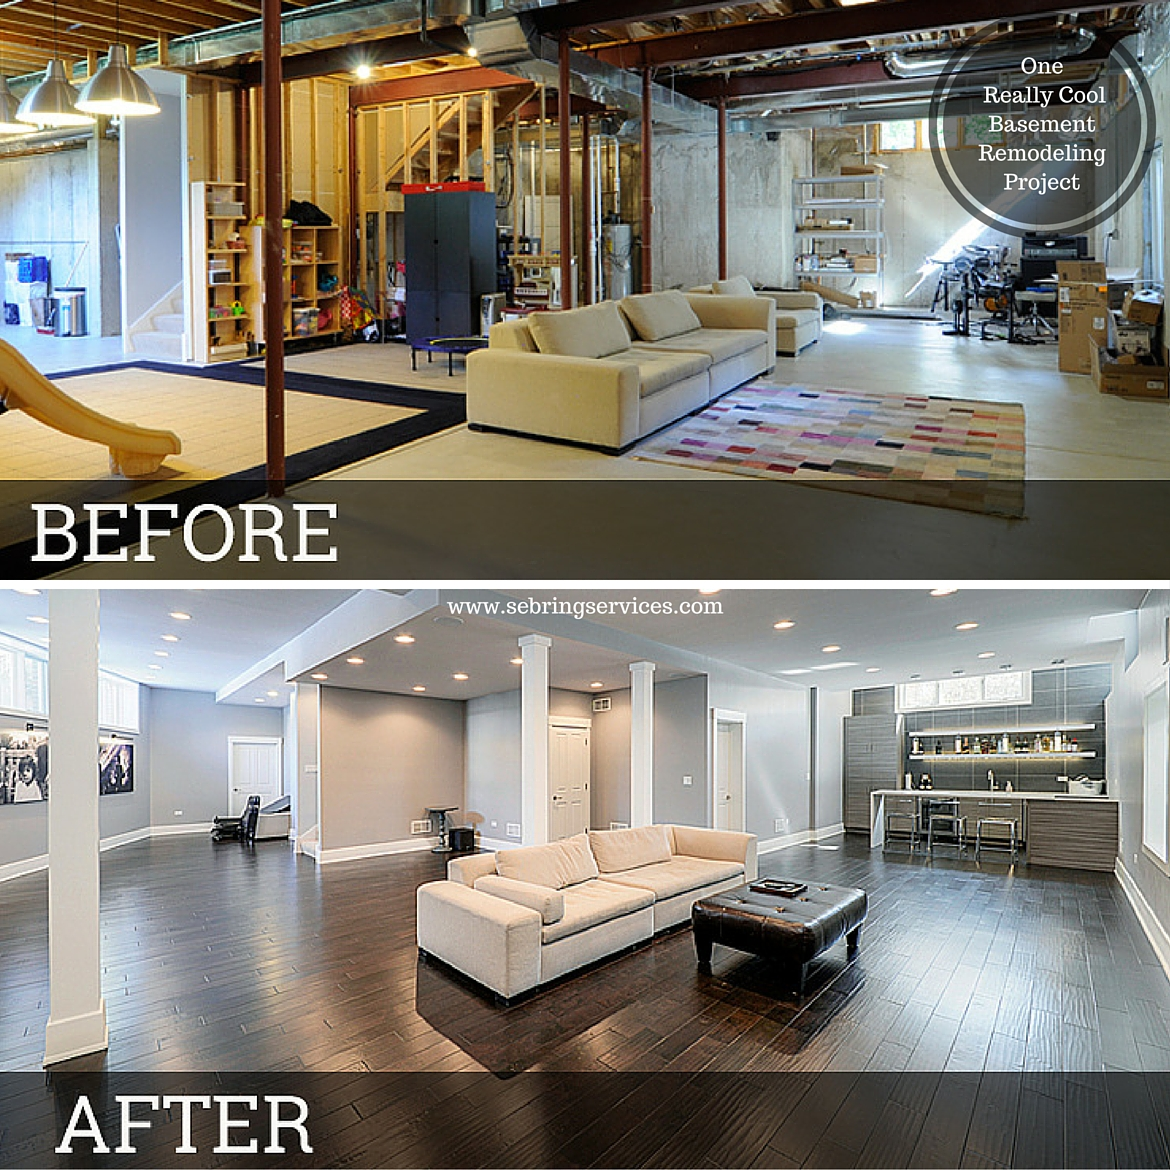 10 Inspirational Basement Remodels! Before And After